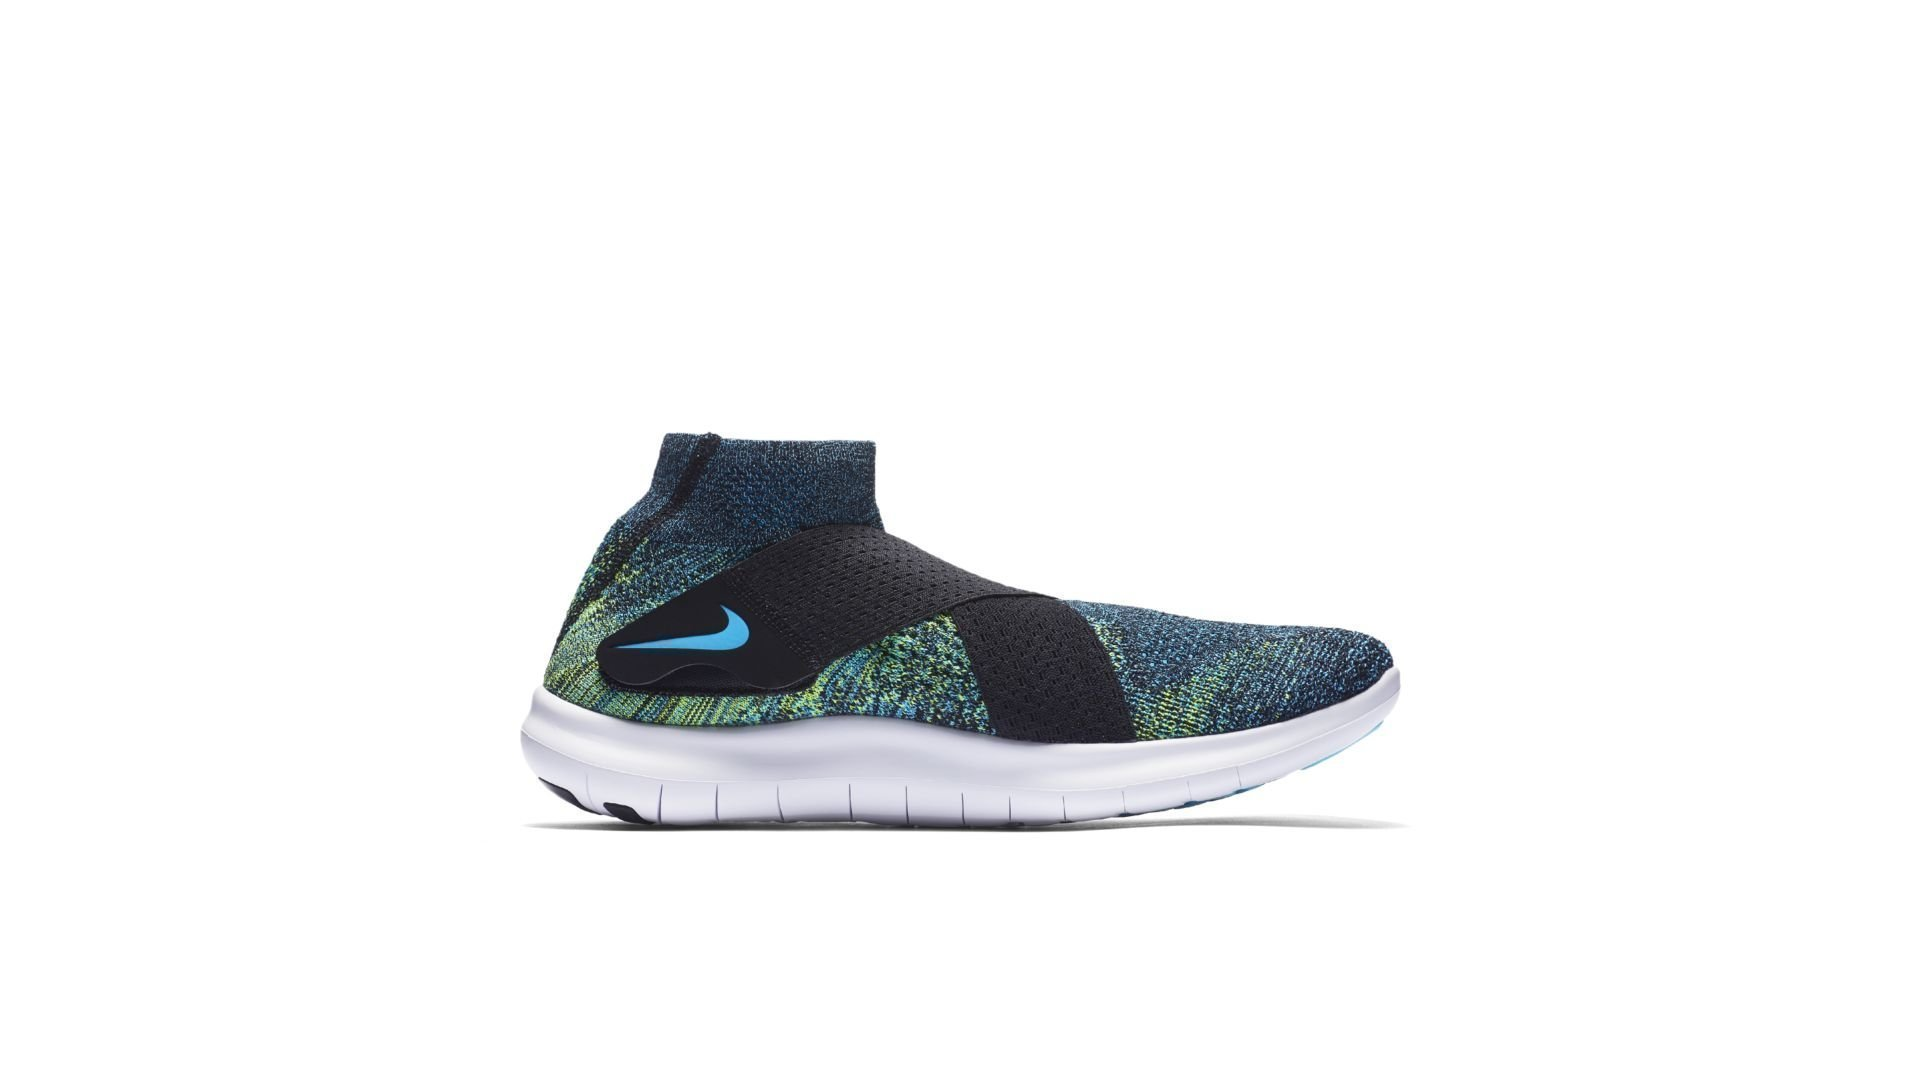 Nike Free RN Motion Flyknit 2017 Multi-Color (880845-004)